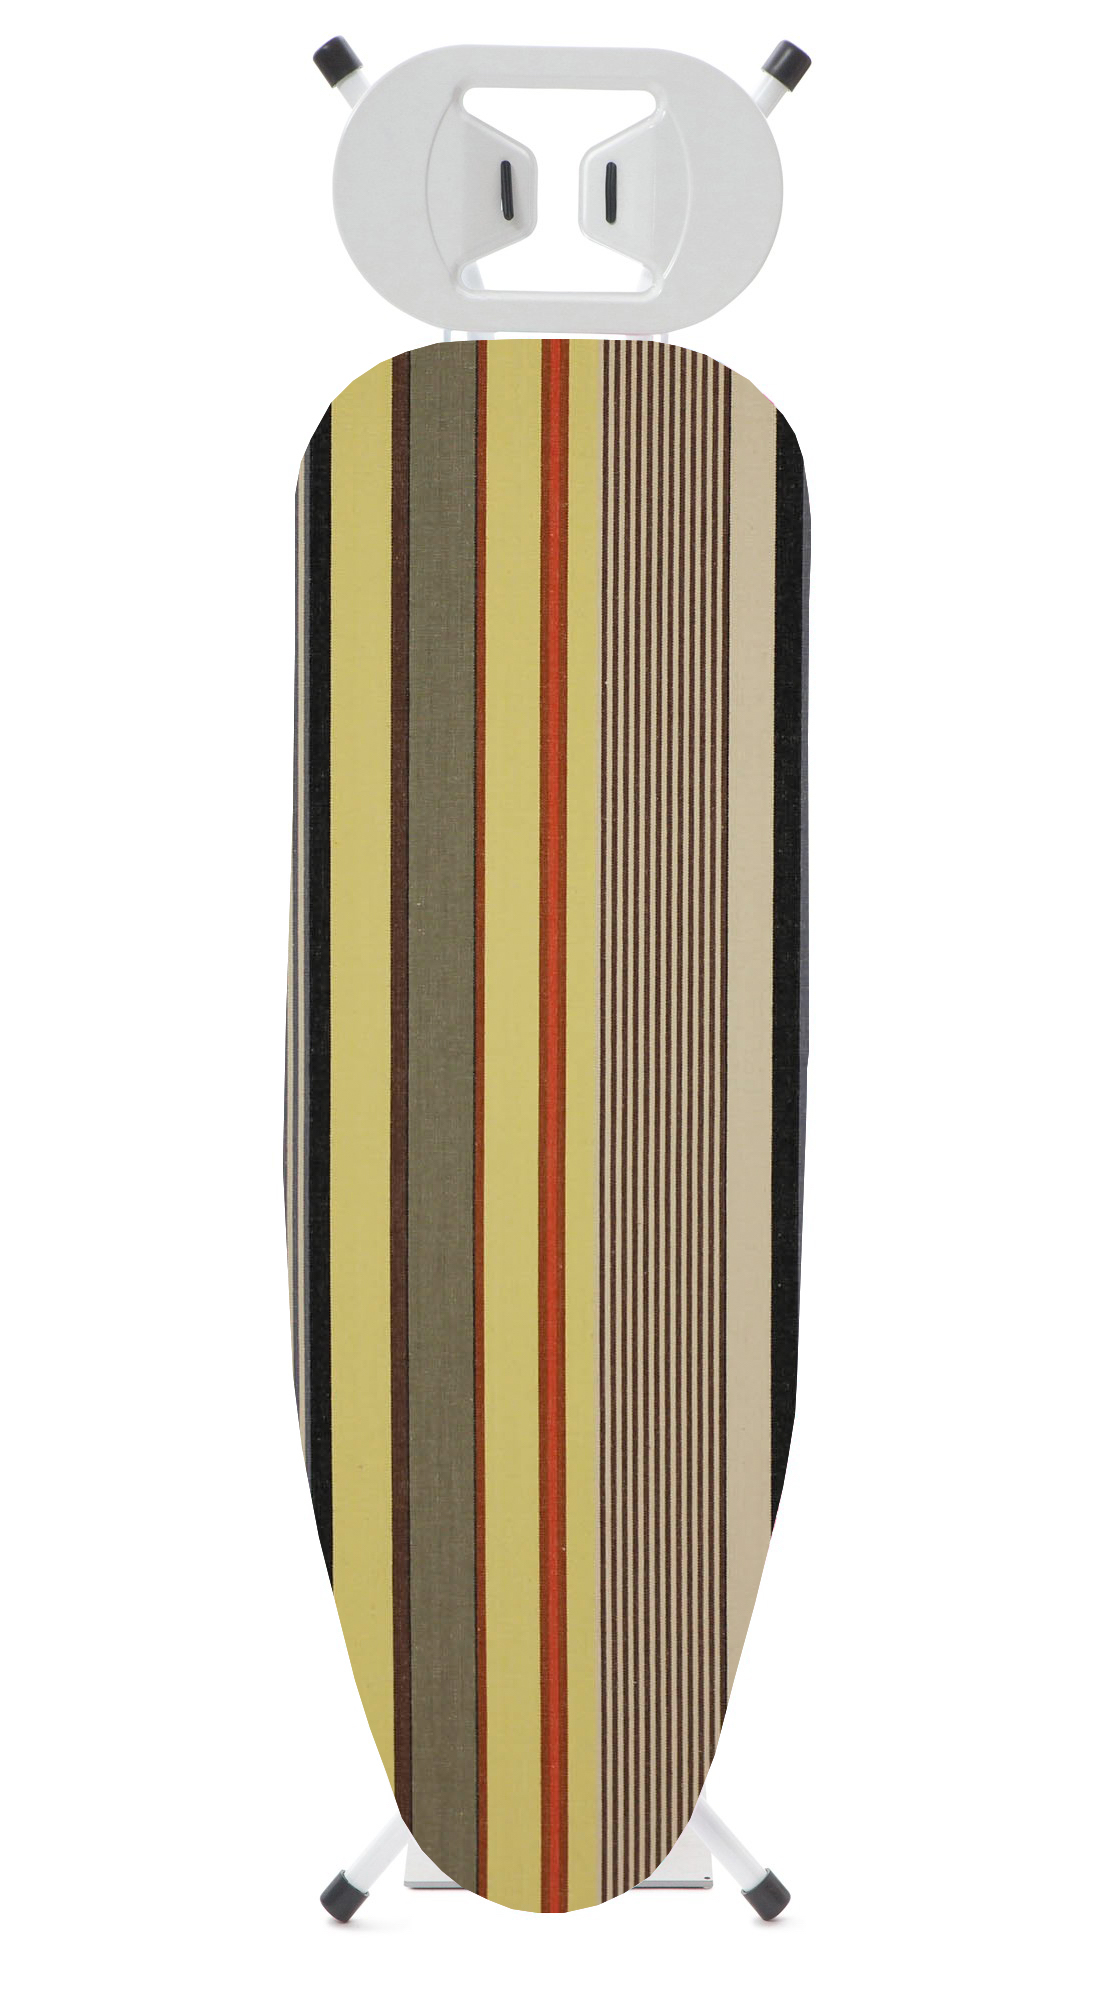 Blue Striped Ironing Board Covers | Deckchair Stripe Covers for Ironing Boards - Pilota Stripes